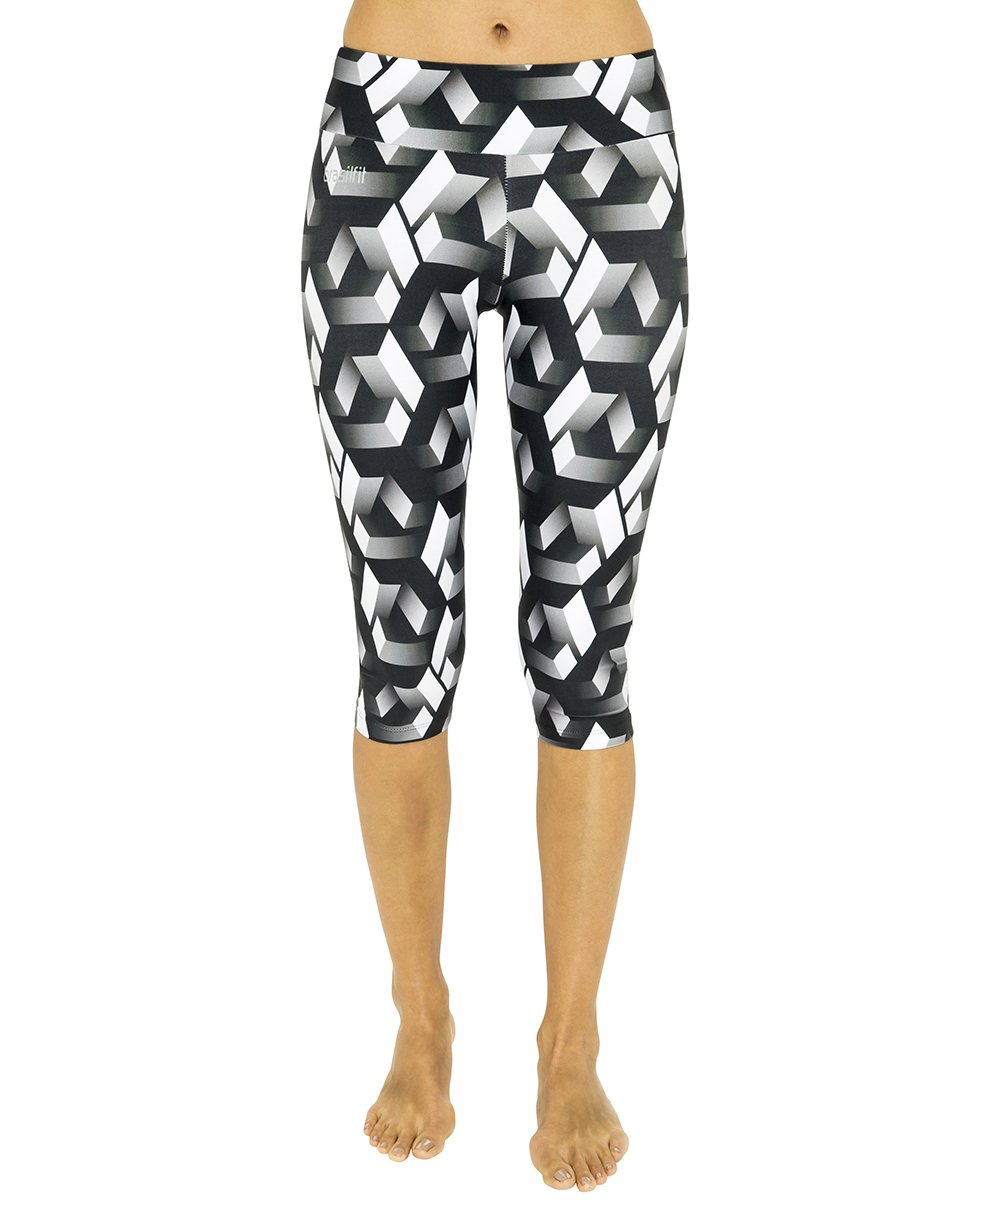 Side view product image for Brasilfit Labyrinth under knee activewear leggings.  Labyrinth leggings are part of our premium printed activewear collection that is focused on performance, high compression activewear with colourful prints.